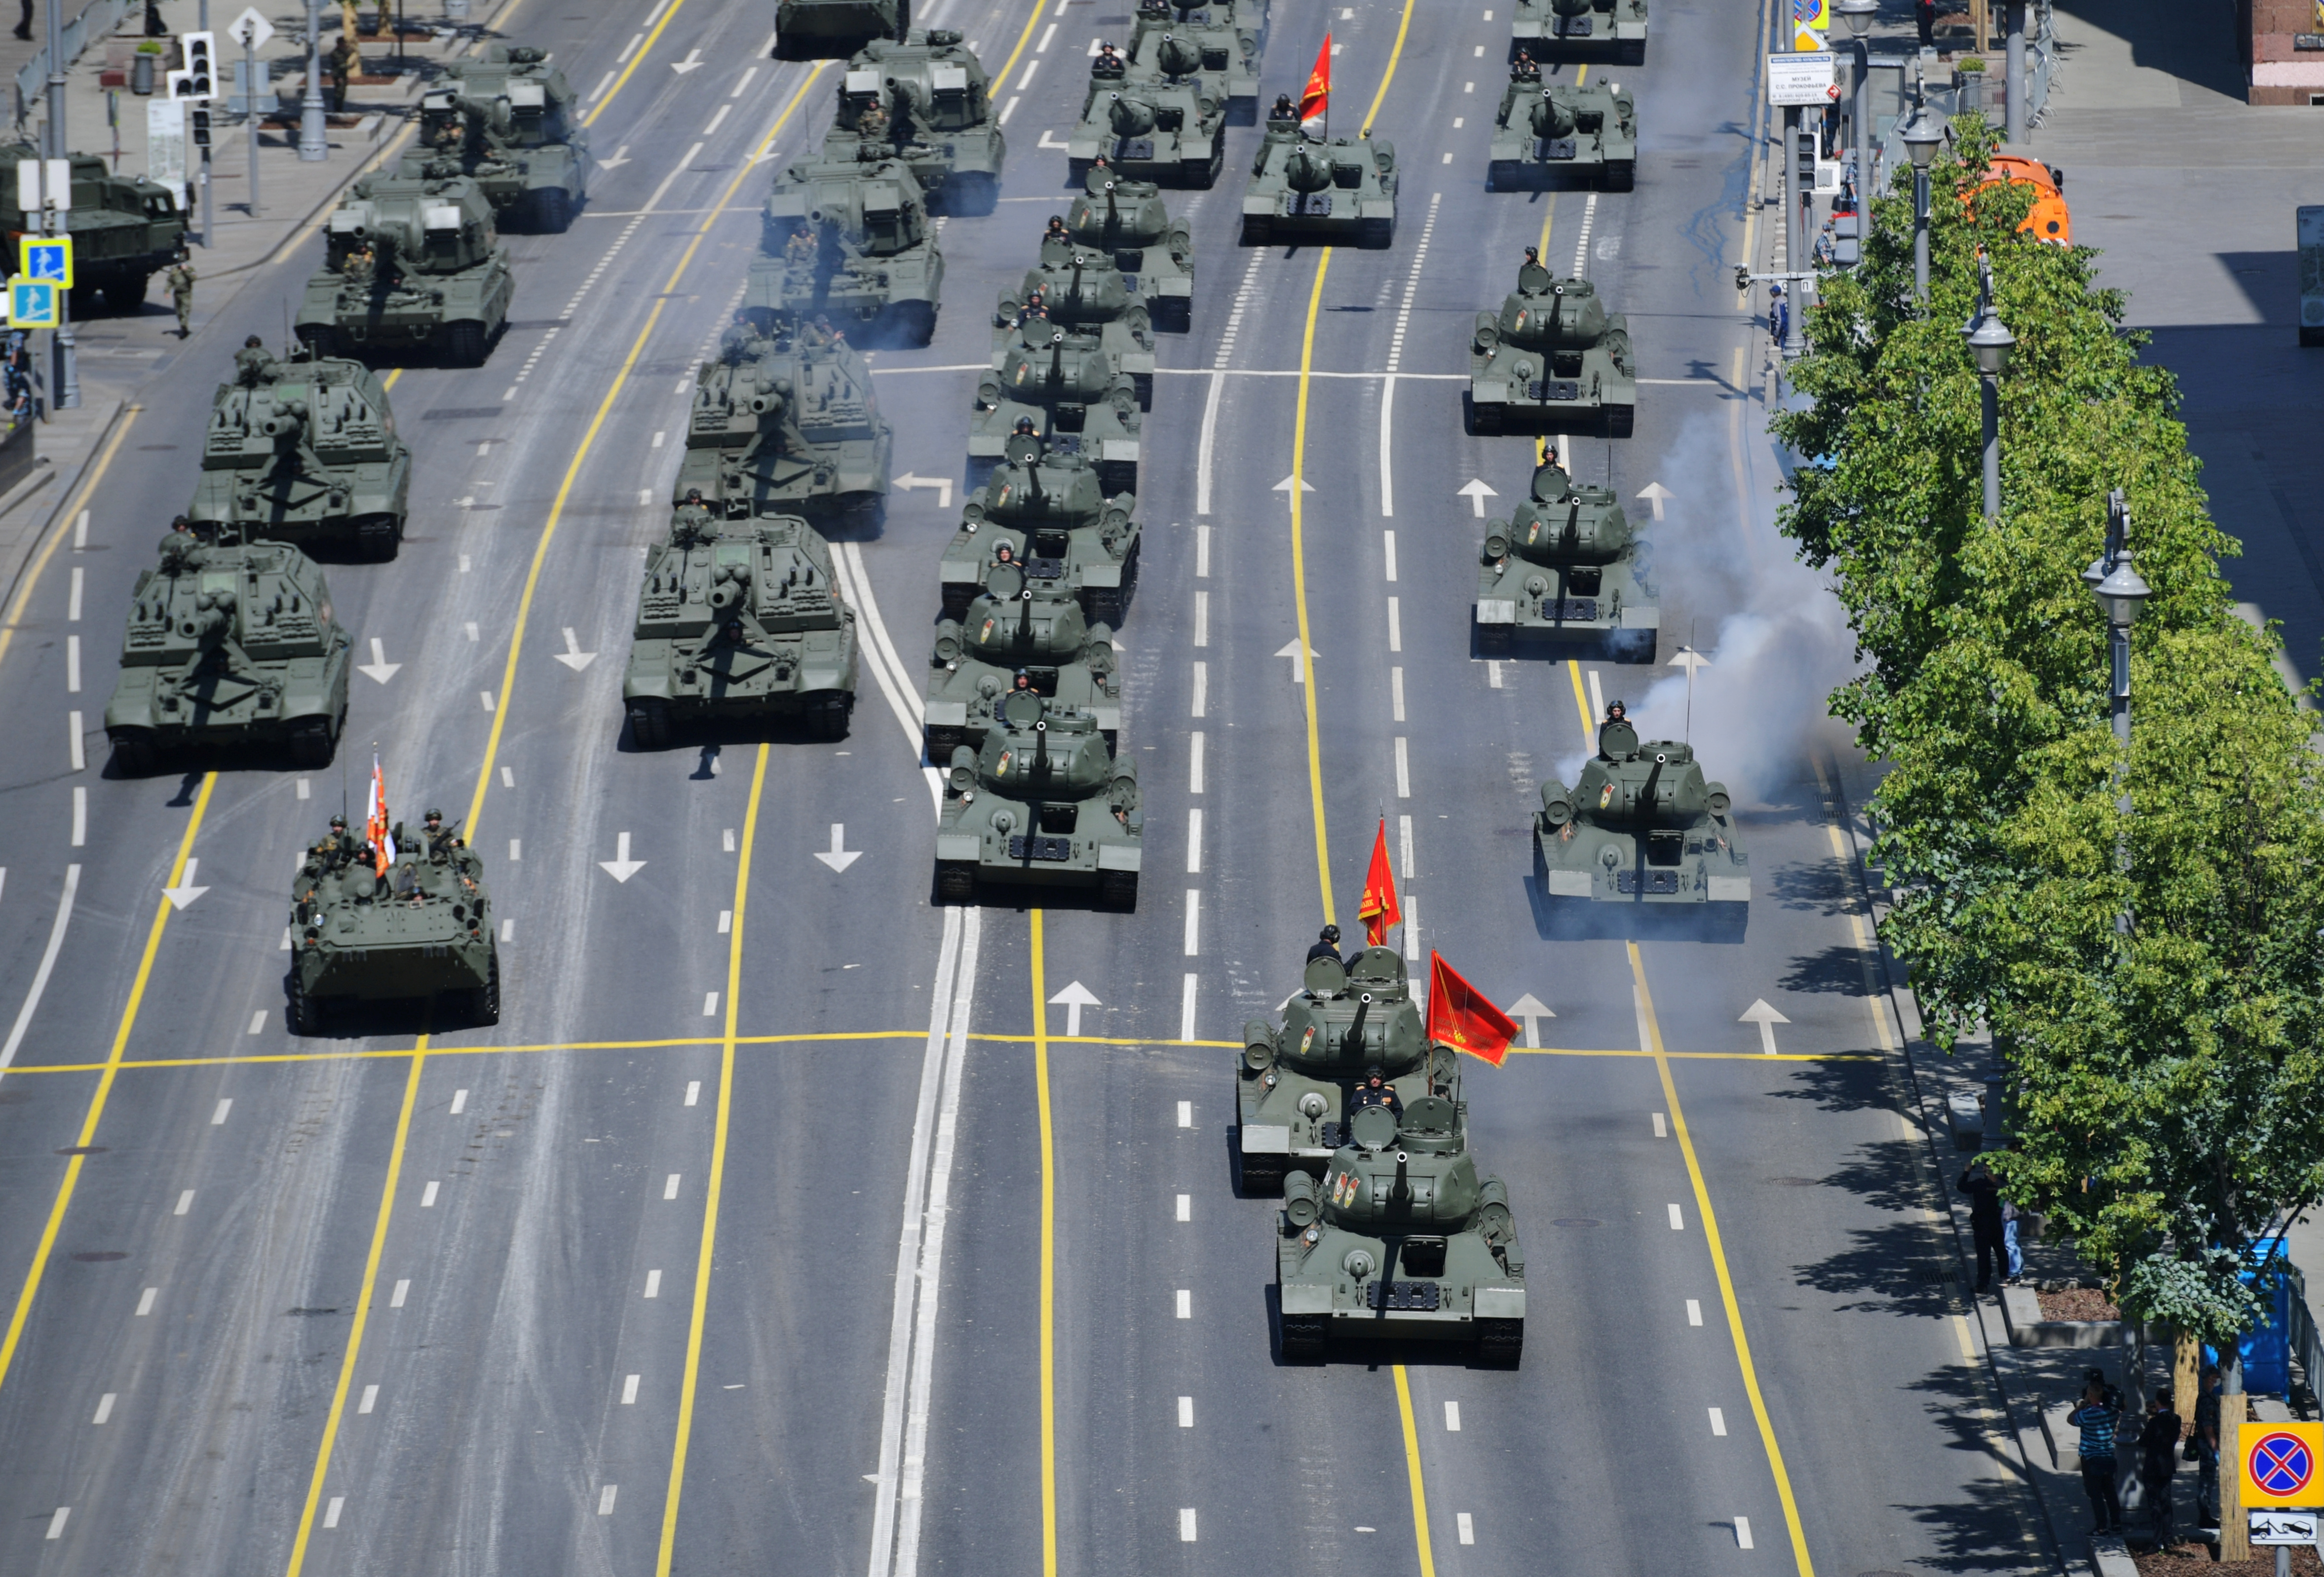 Armoured vehicles drive during the Victory Day Parade in Moscow, Russia, June 24, 2020. Host photo agency/Vladimir Trefilov via REUTERS